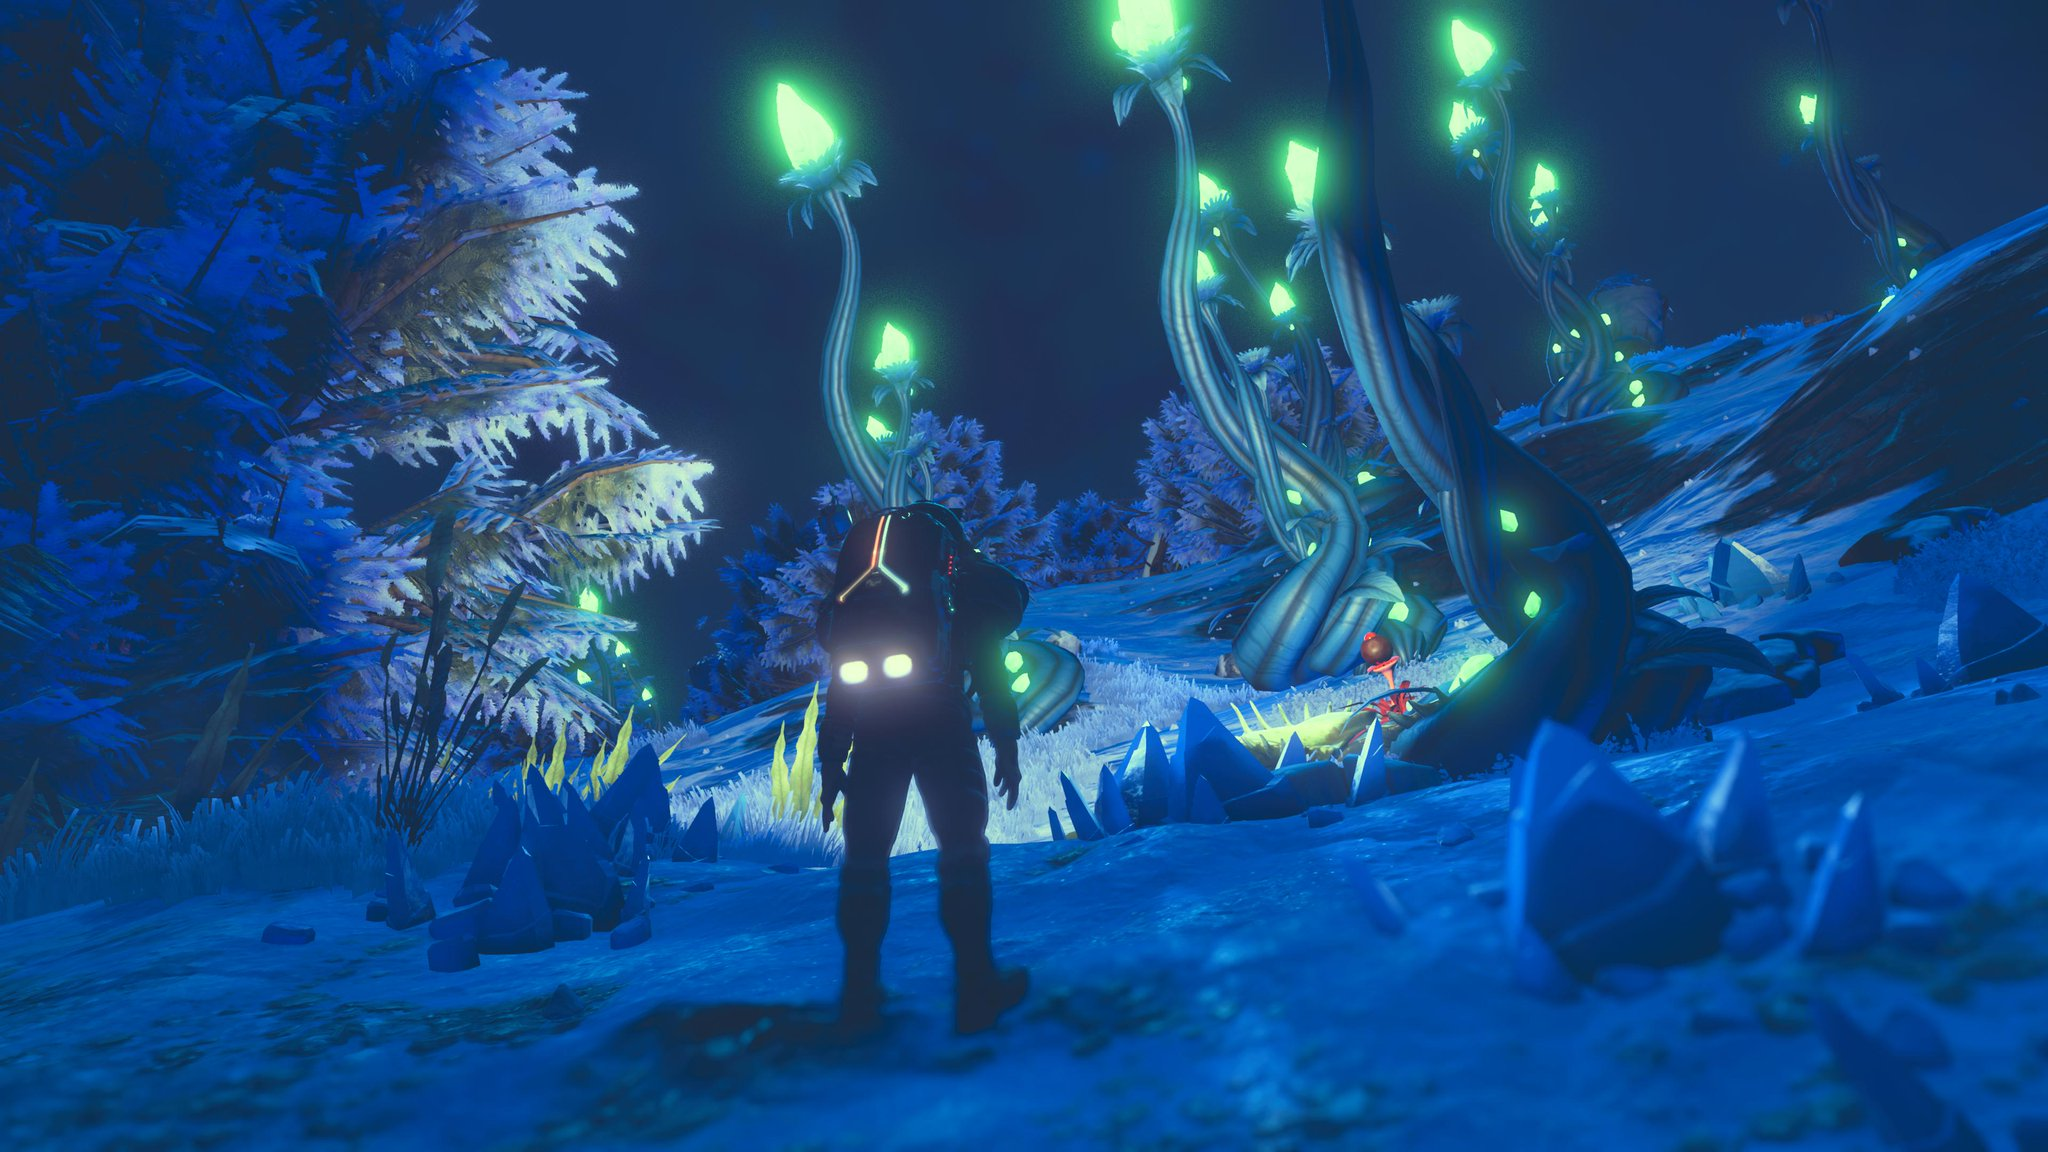 The astronaut on a frozen planet. Crystals dot the ground and pants with glowing tips stretch into the sky.